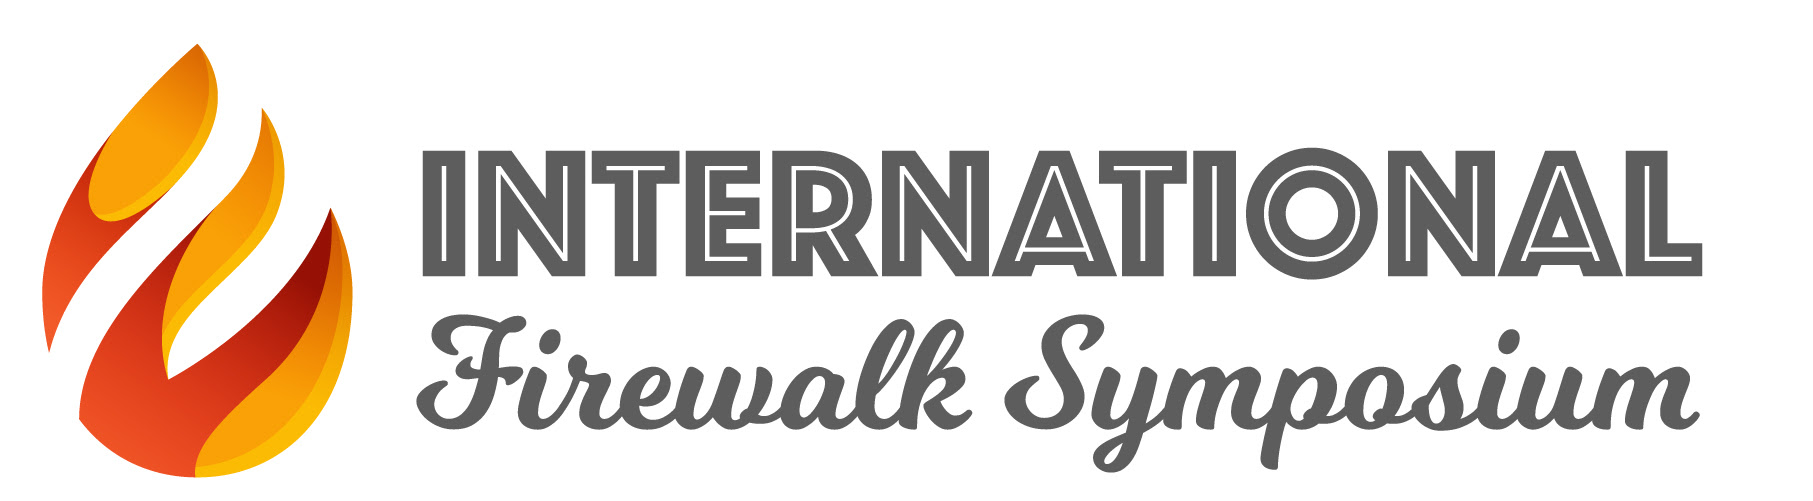 First International Firewalking Symposium logo